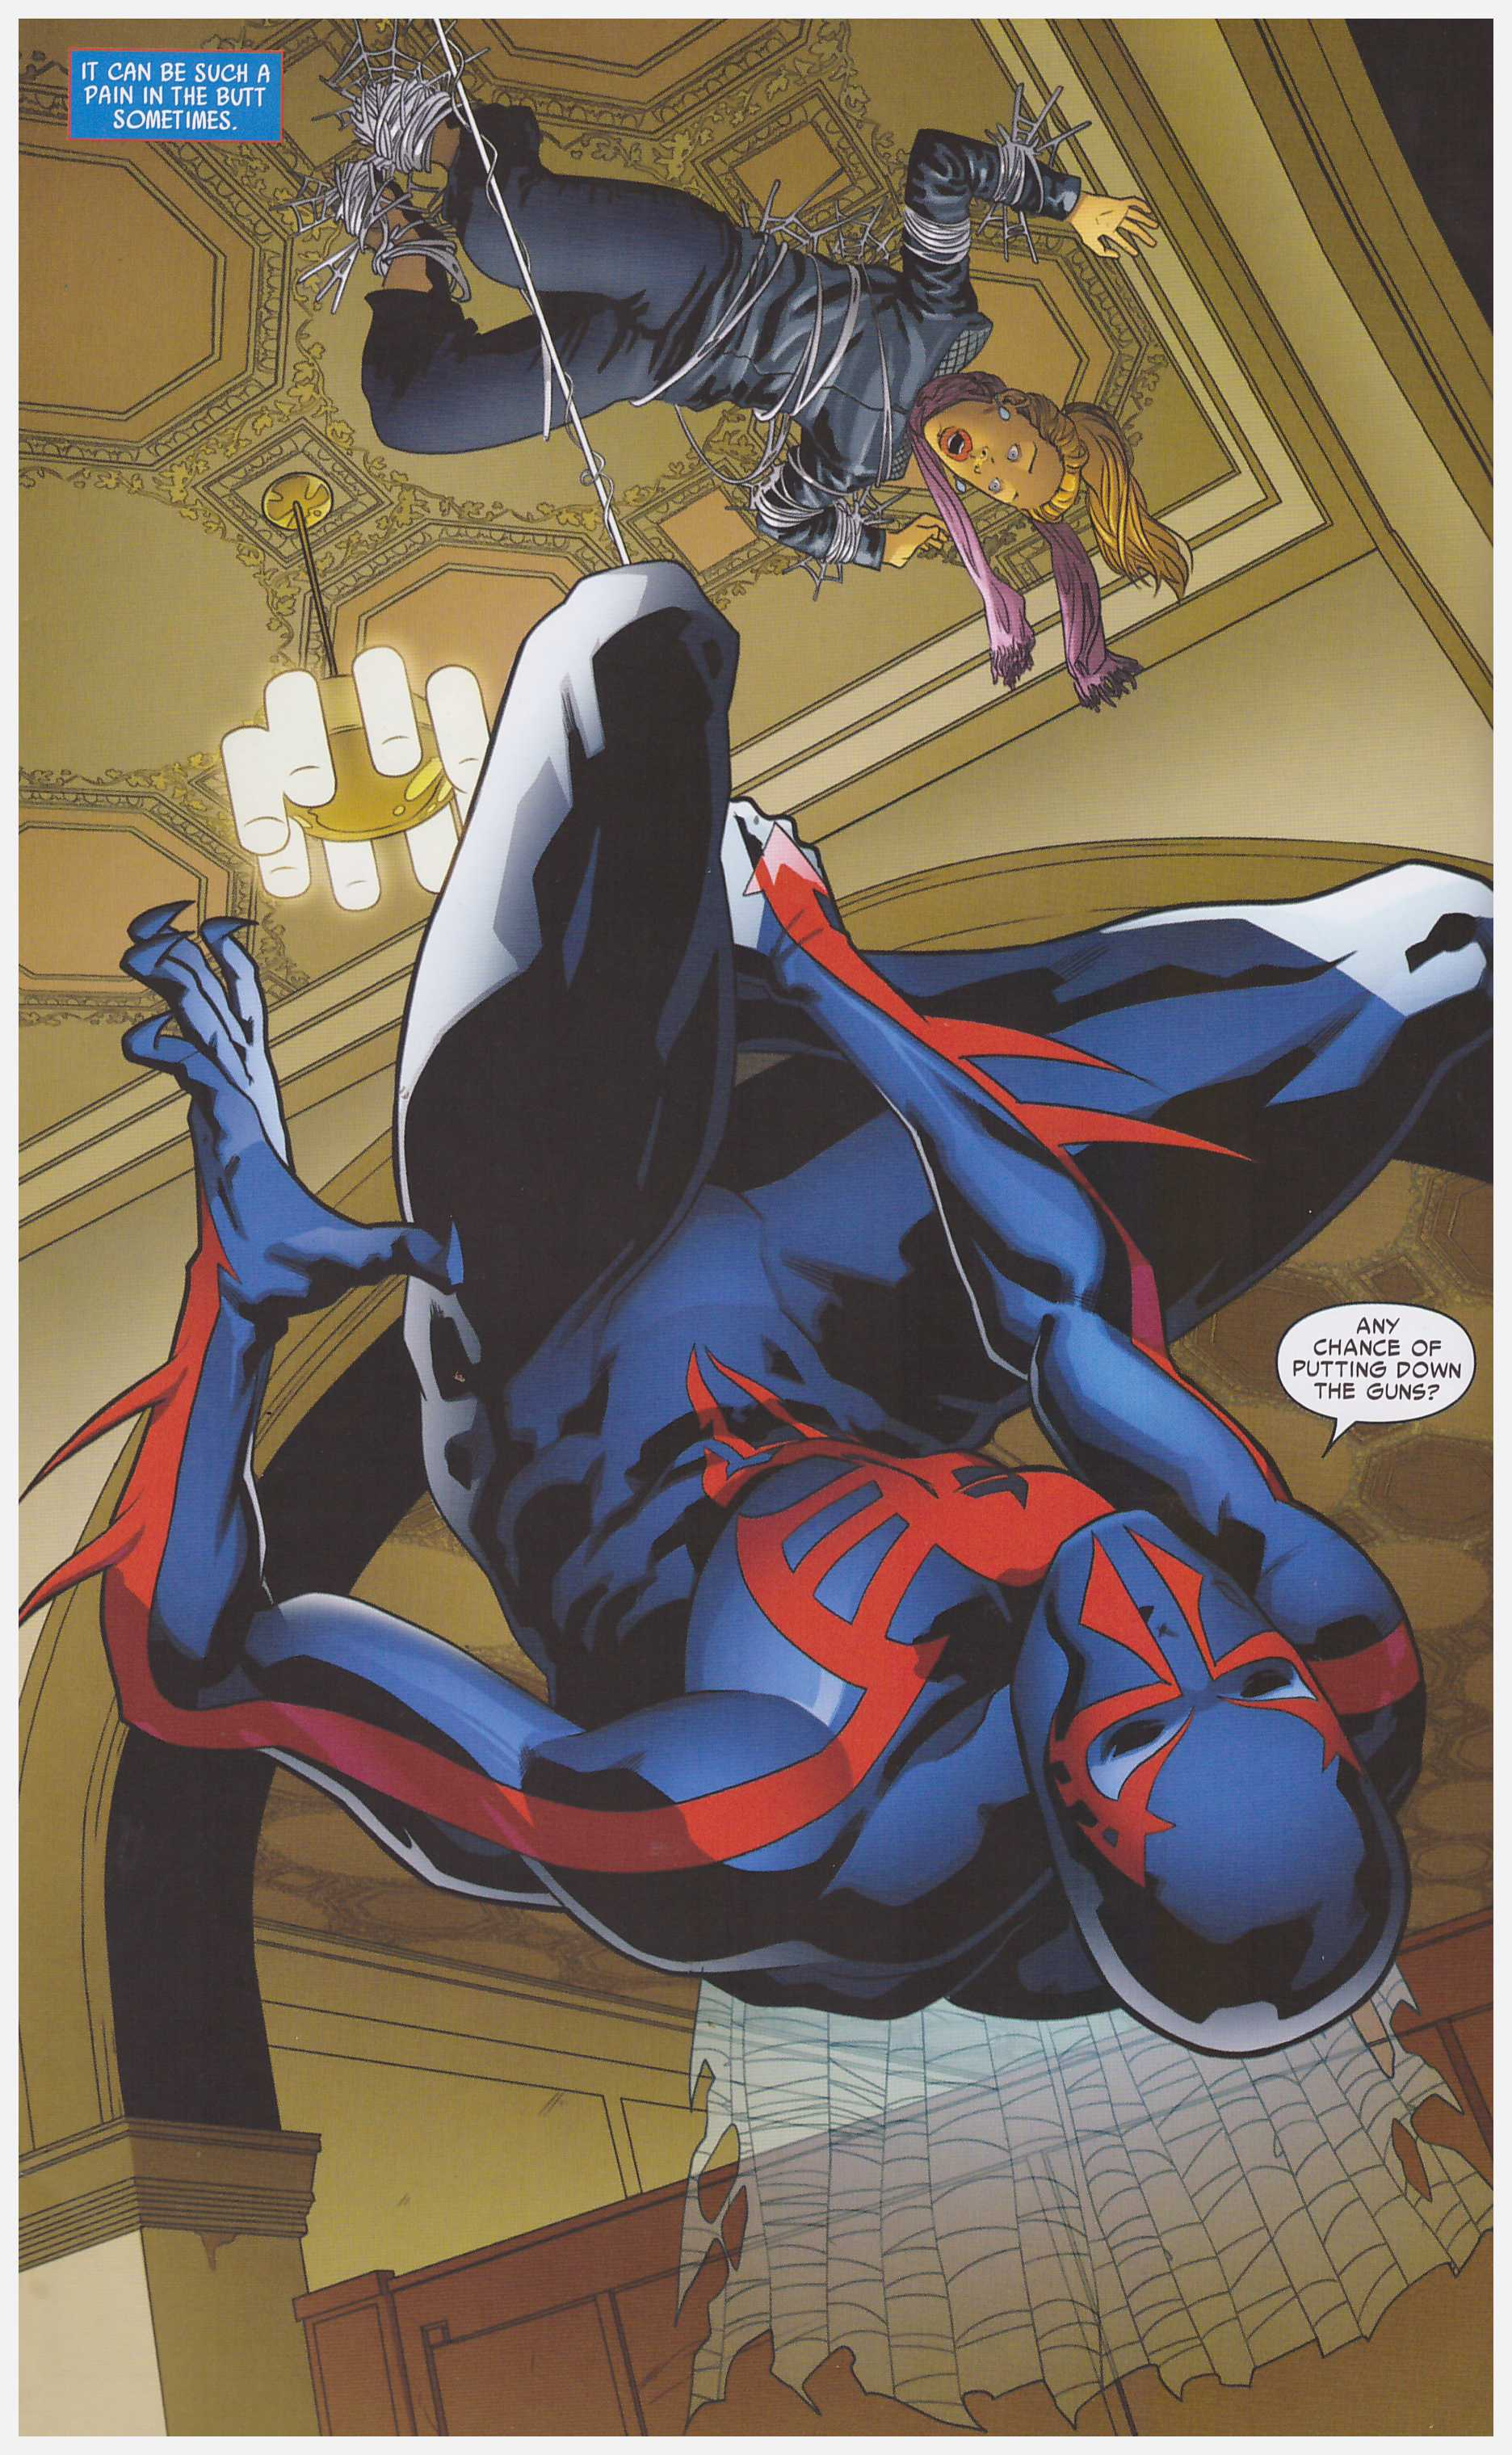 Spider-Man 2099 Out of Time review